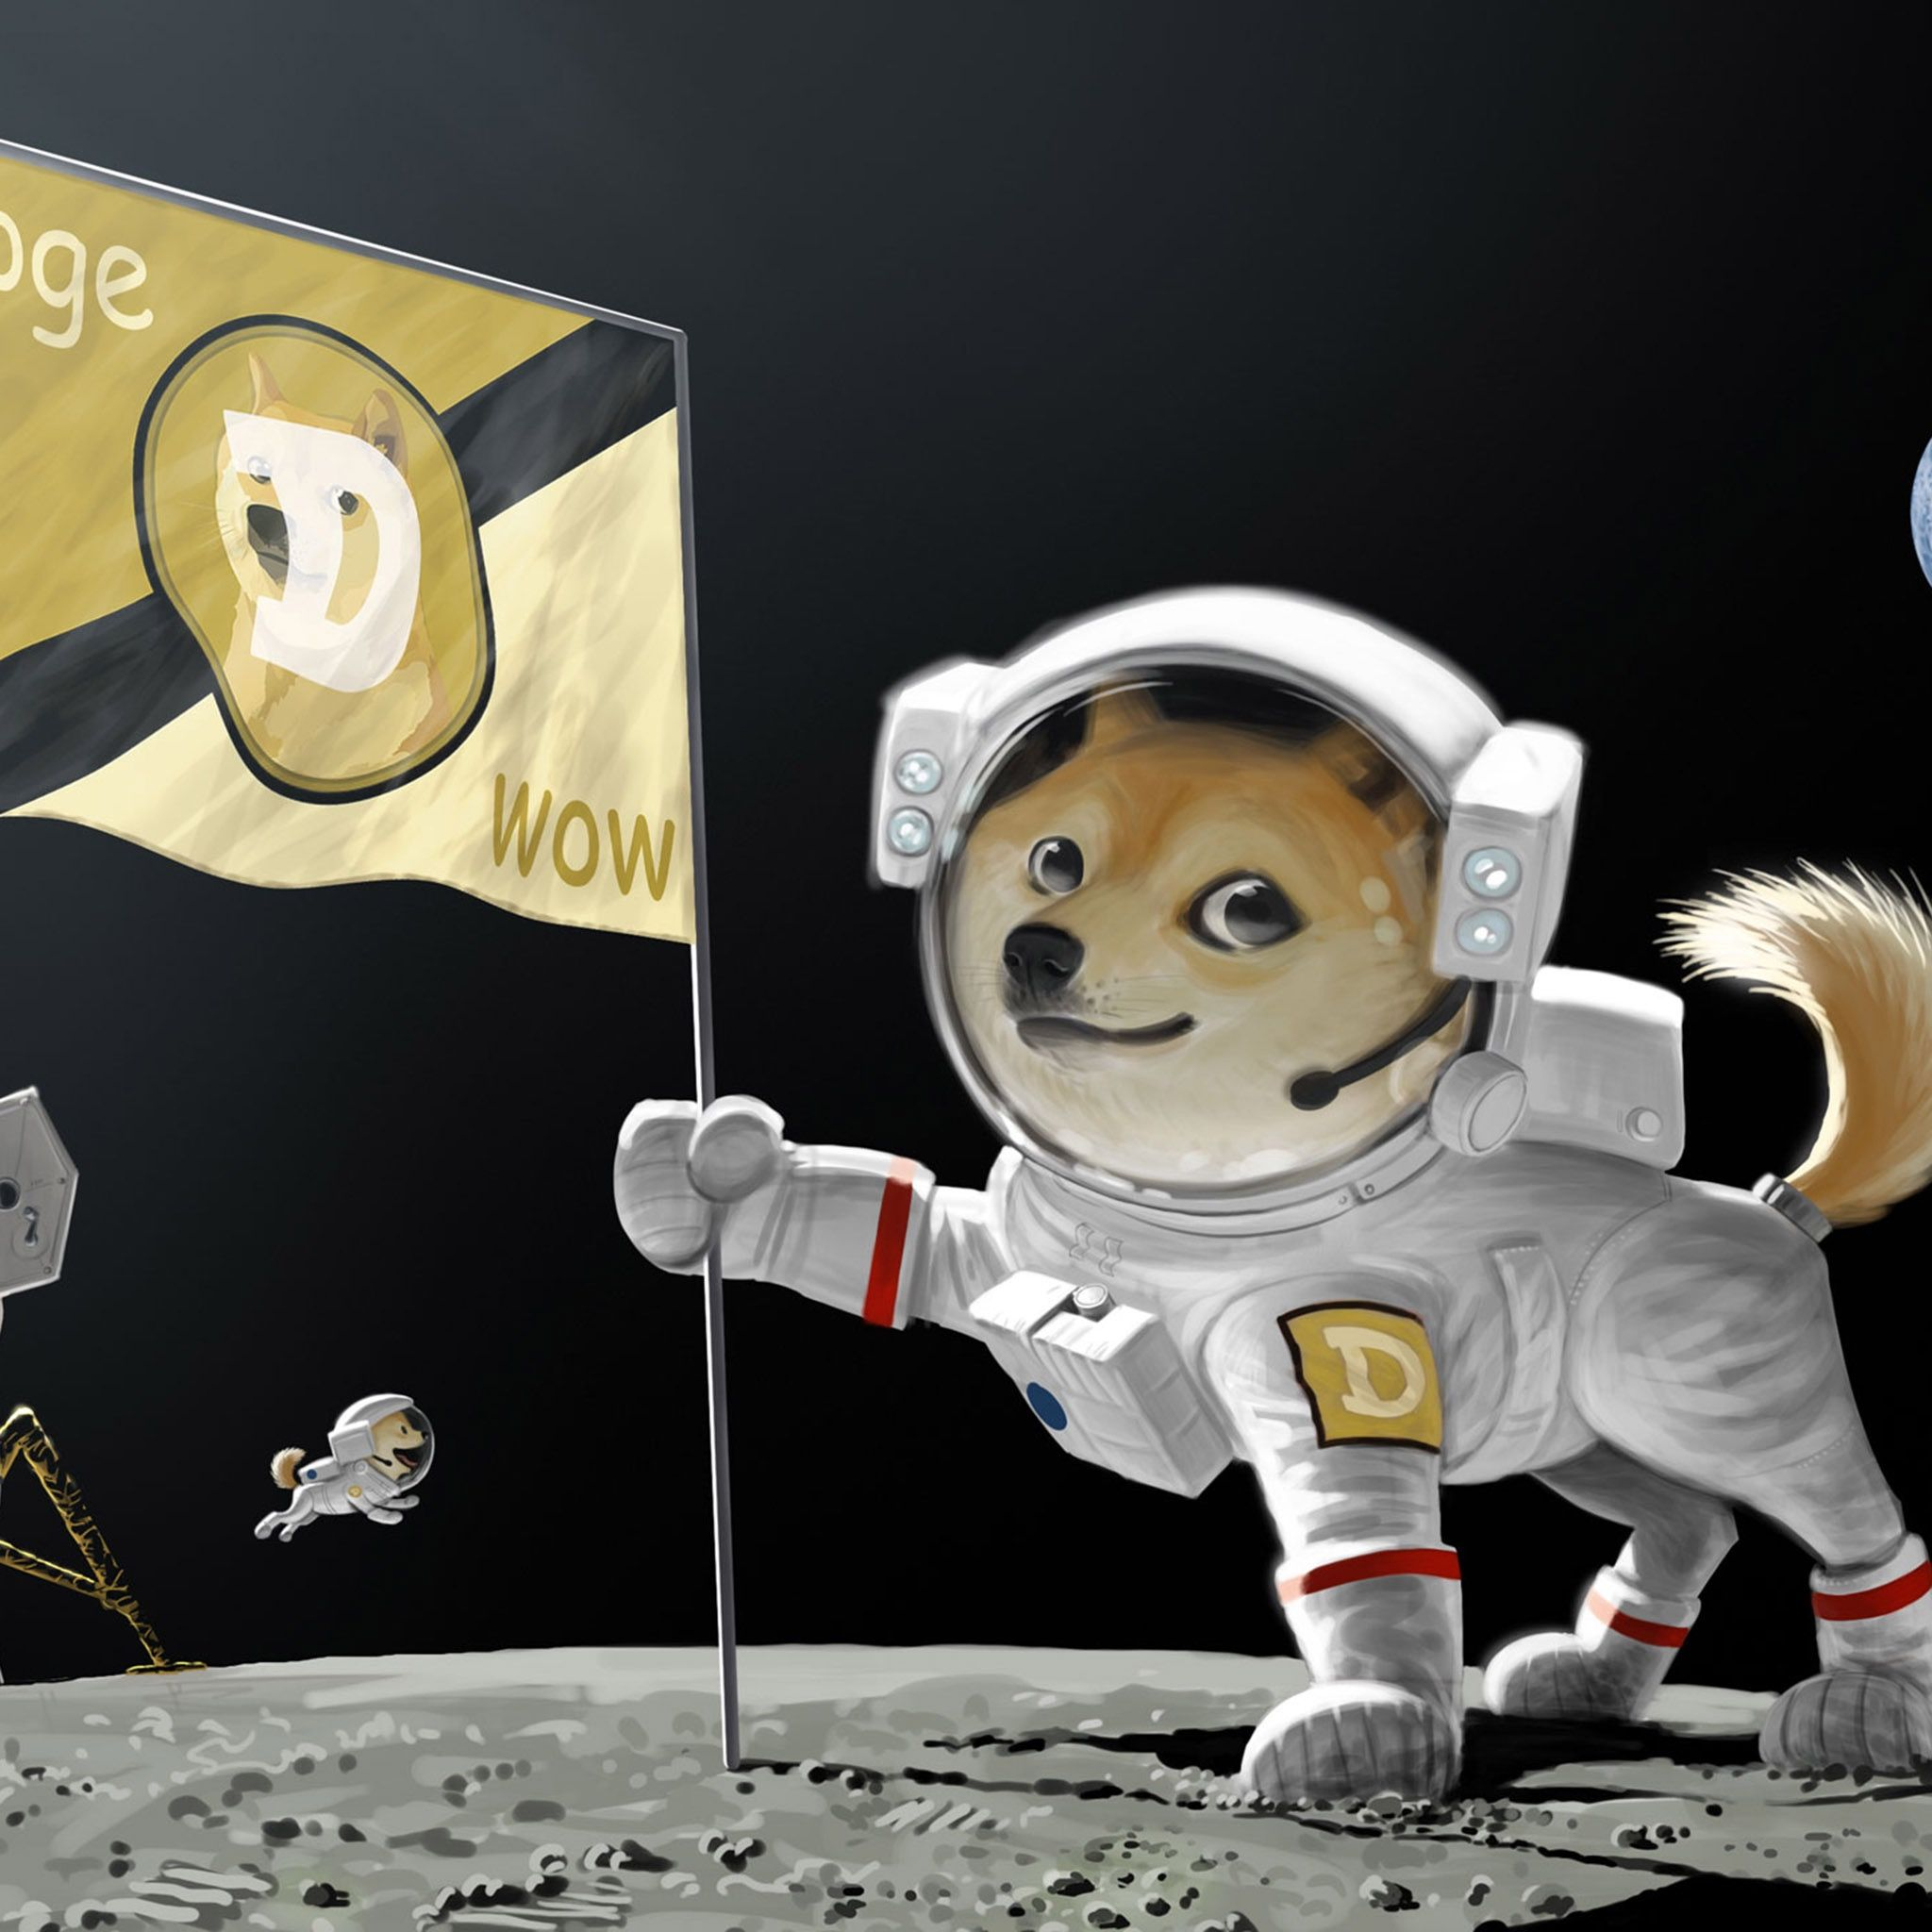 Pin by Colton Teague on Dog's | Doge, Best cryptocurrency ...